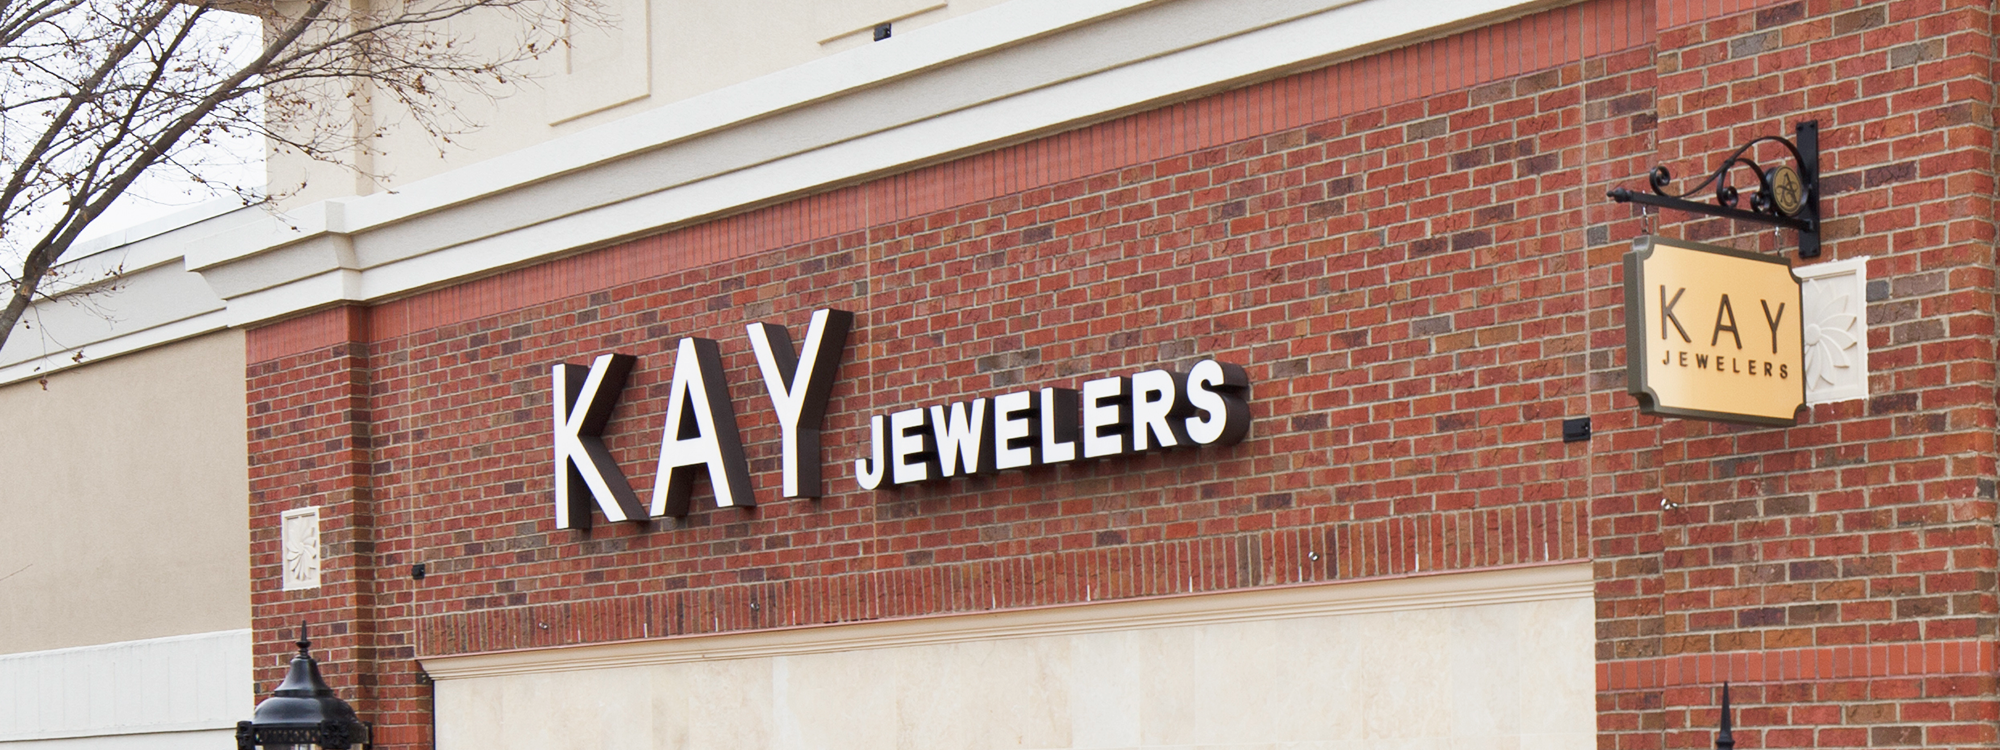 Jared Kay Jewelers Comment Sexual Harassment Lawsuit